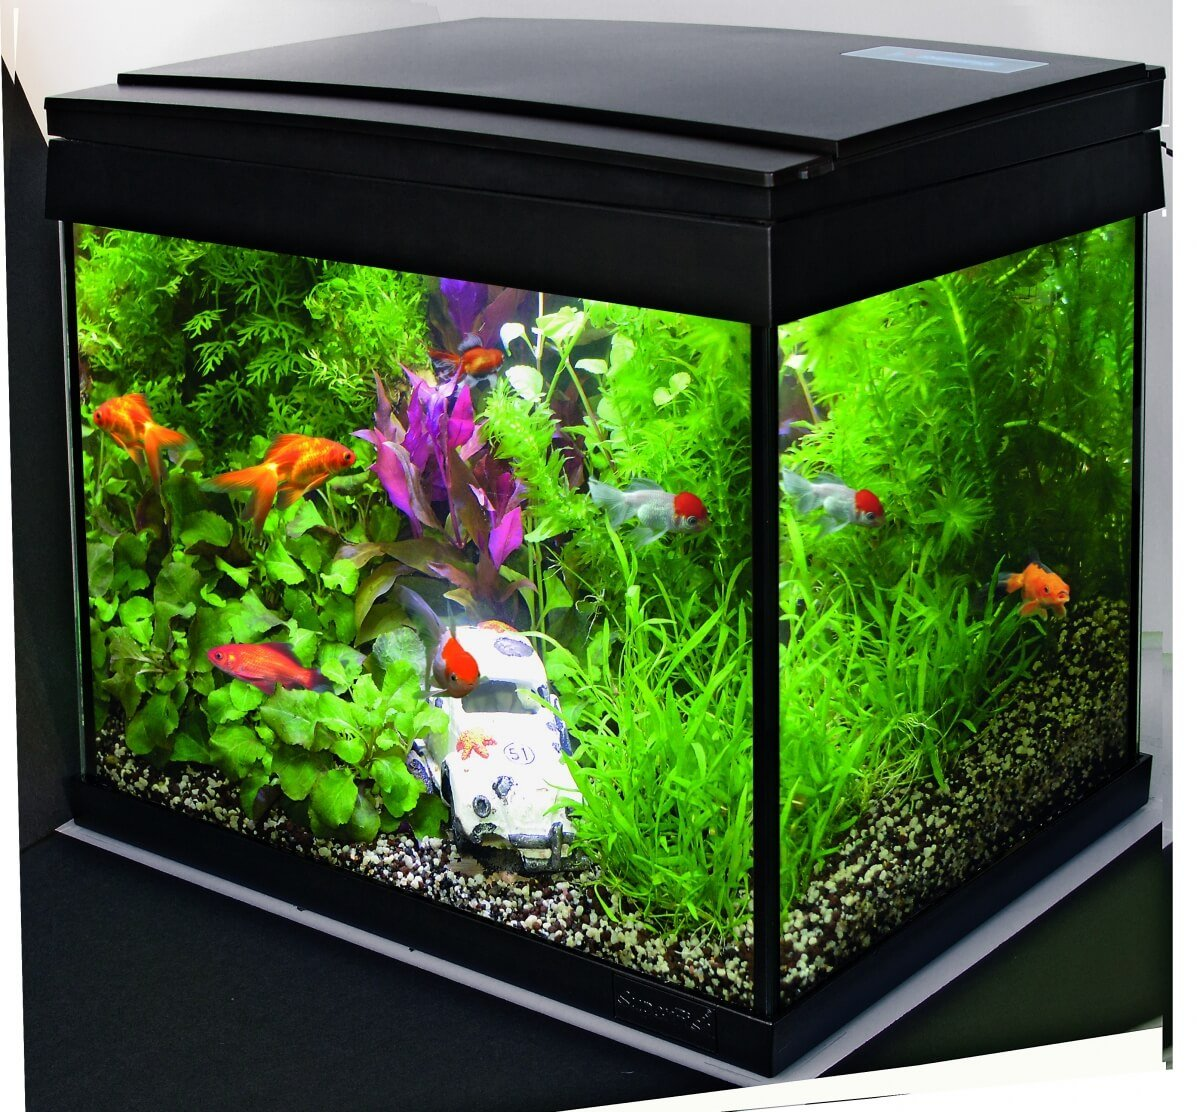 Aquarium aqua 20 led kit poisson rouge aquarium et meuble for Aquarium 20 litres pour poisson rouge